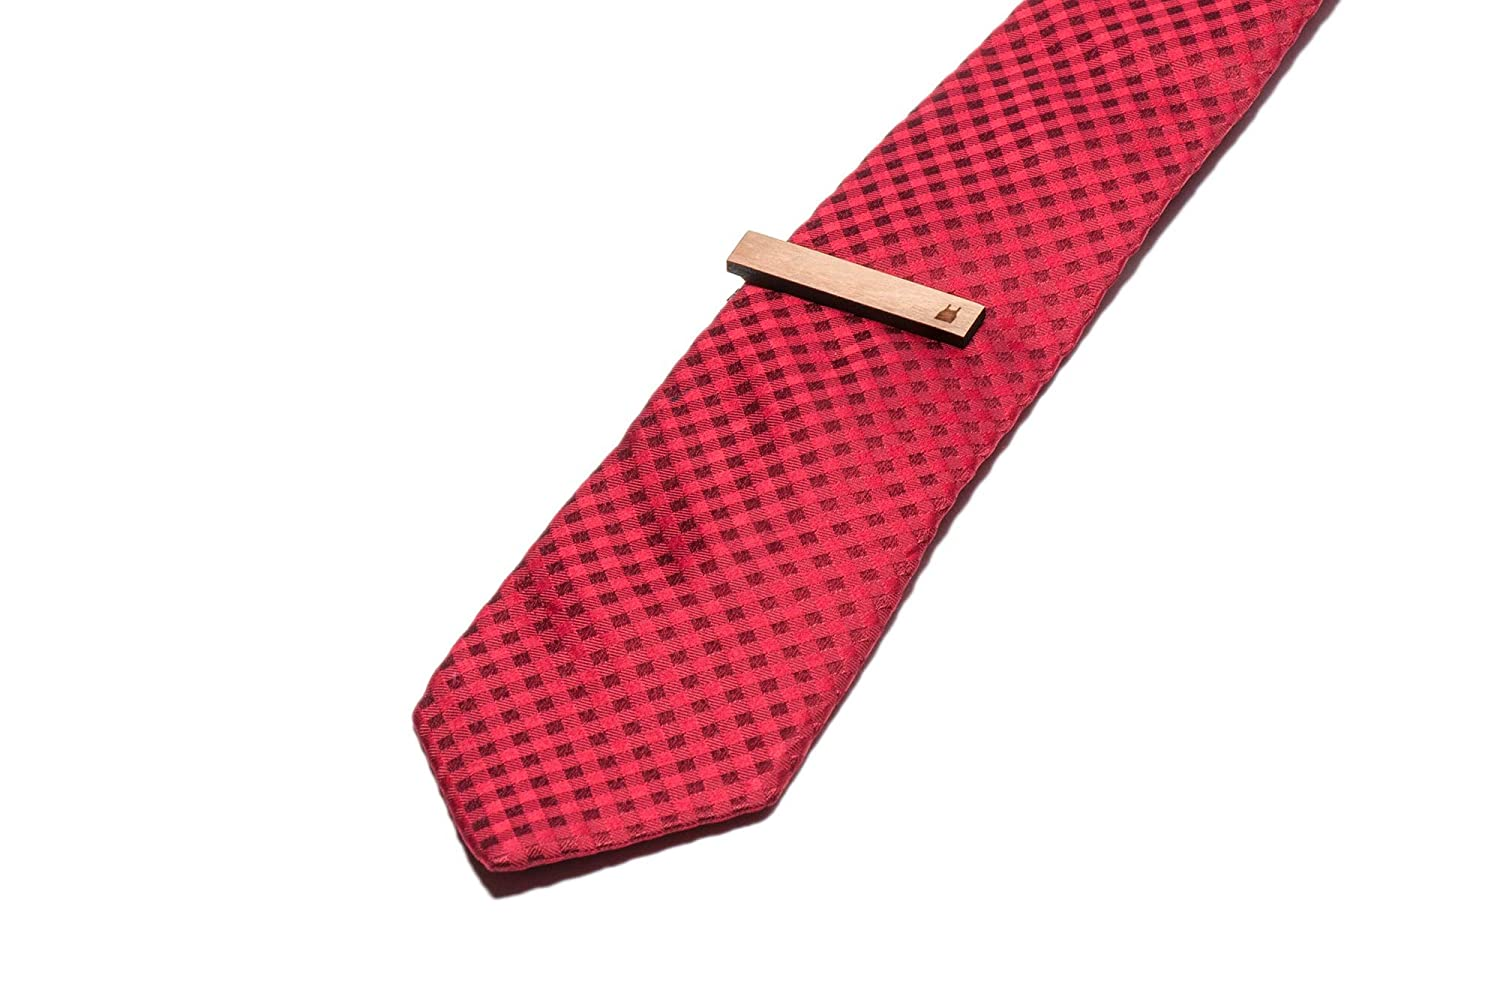 Cherry Wood Tie Bar Engraved in The USA Wooden Accessories Company Wooden Tie Clips with Laser Engraved Crop Top Design